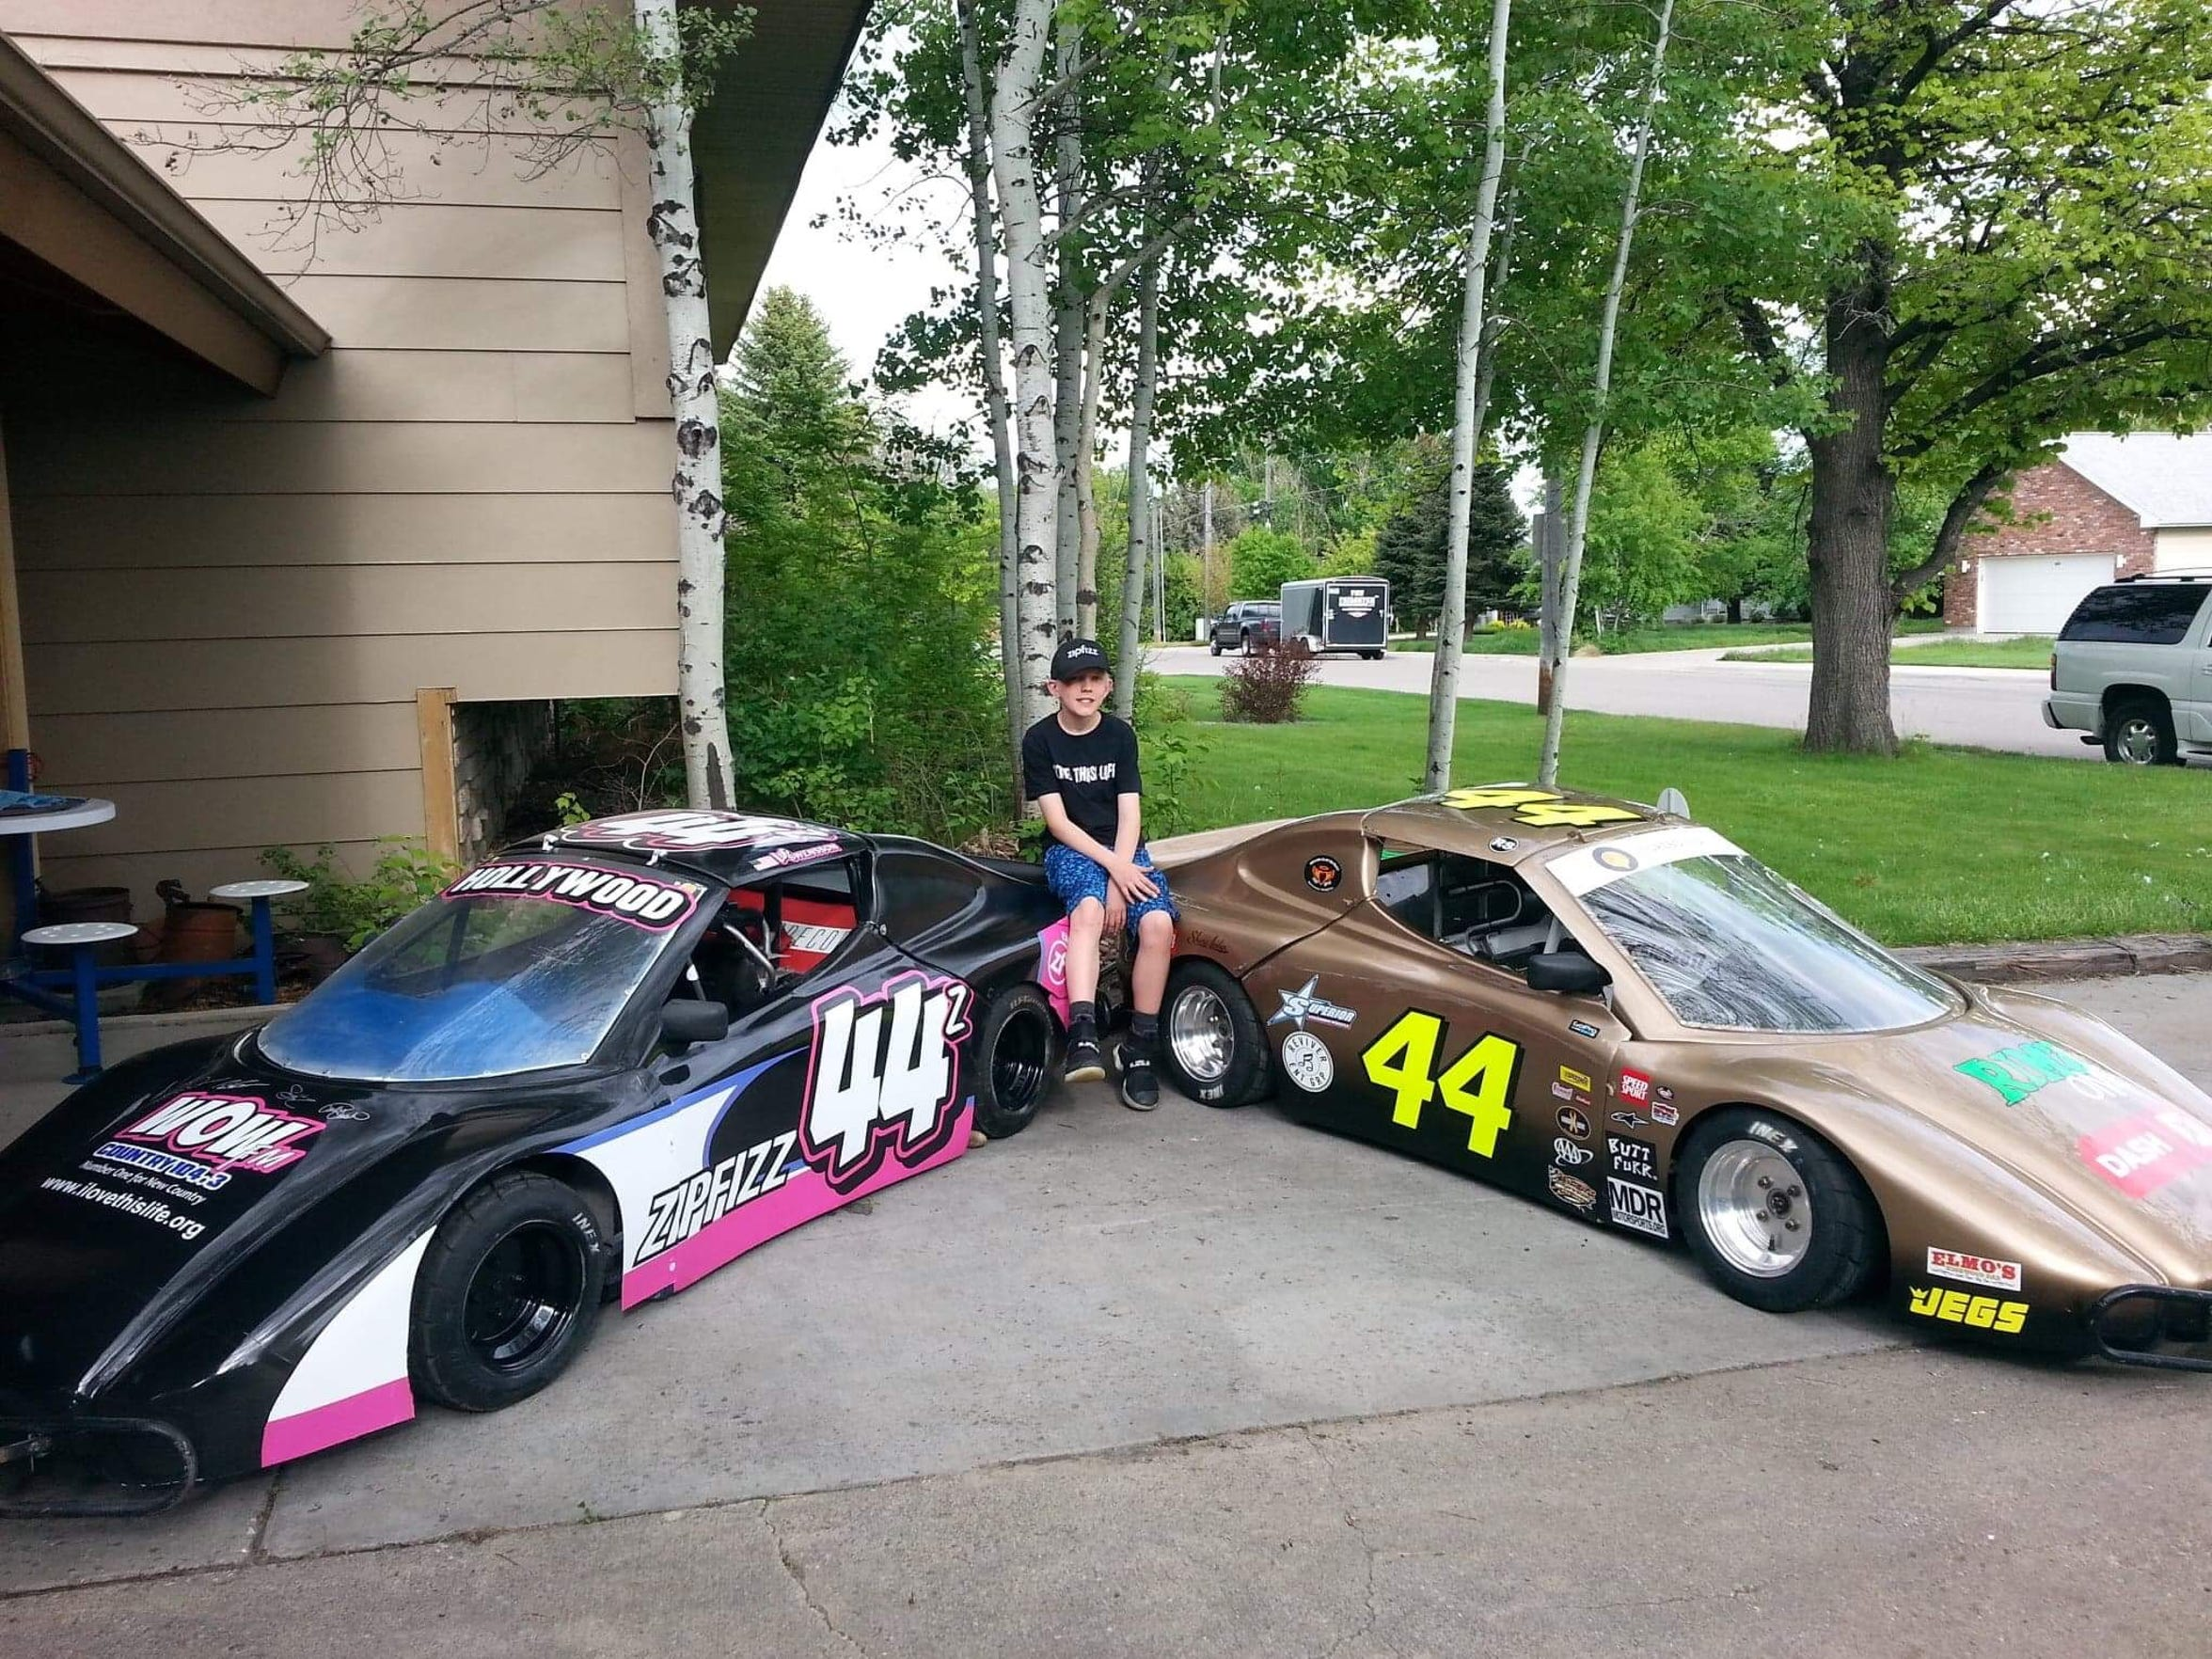 Luc Swensson with his two racing cars, both to honor the fight against cancer